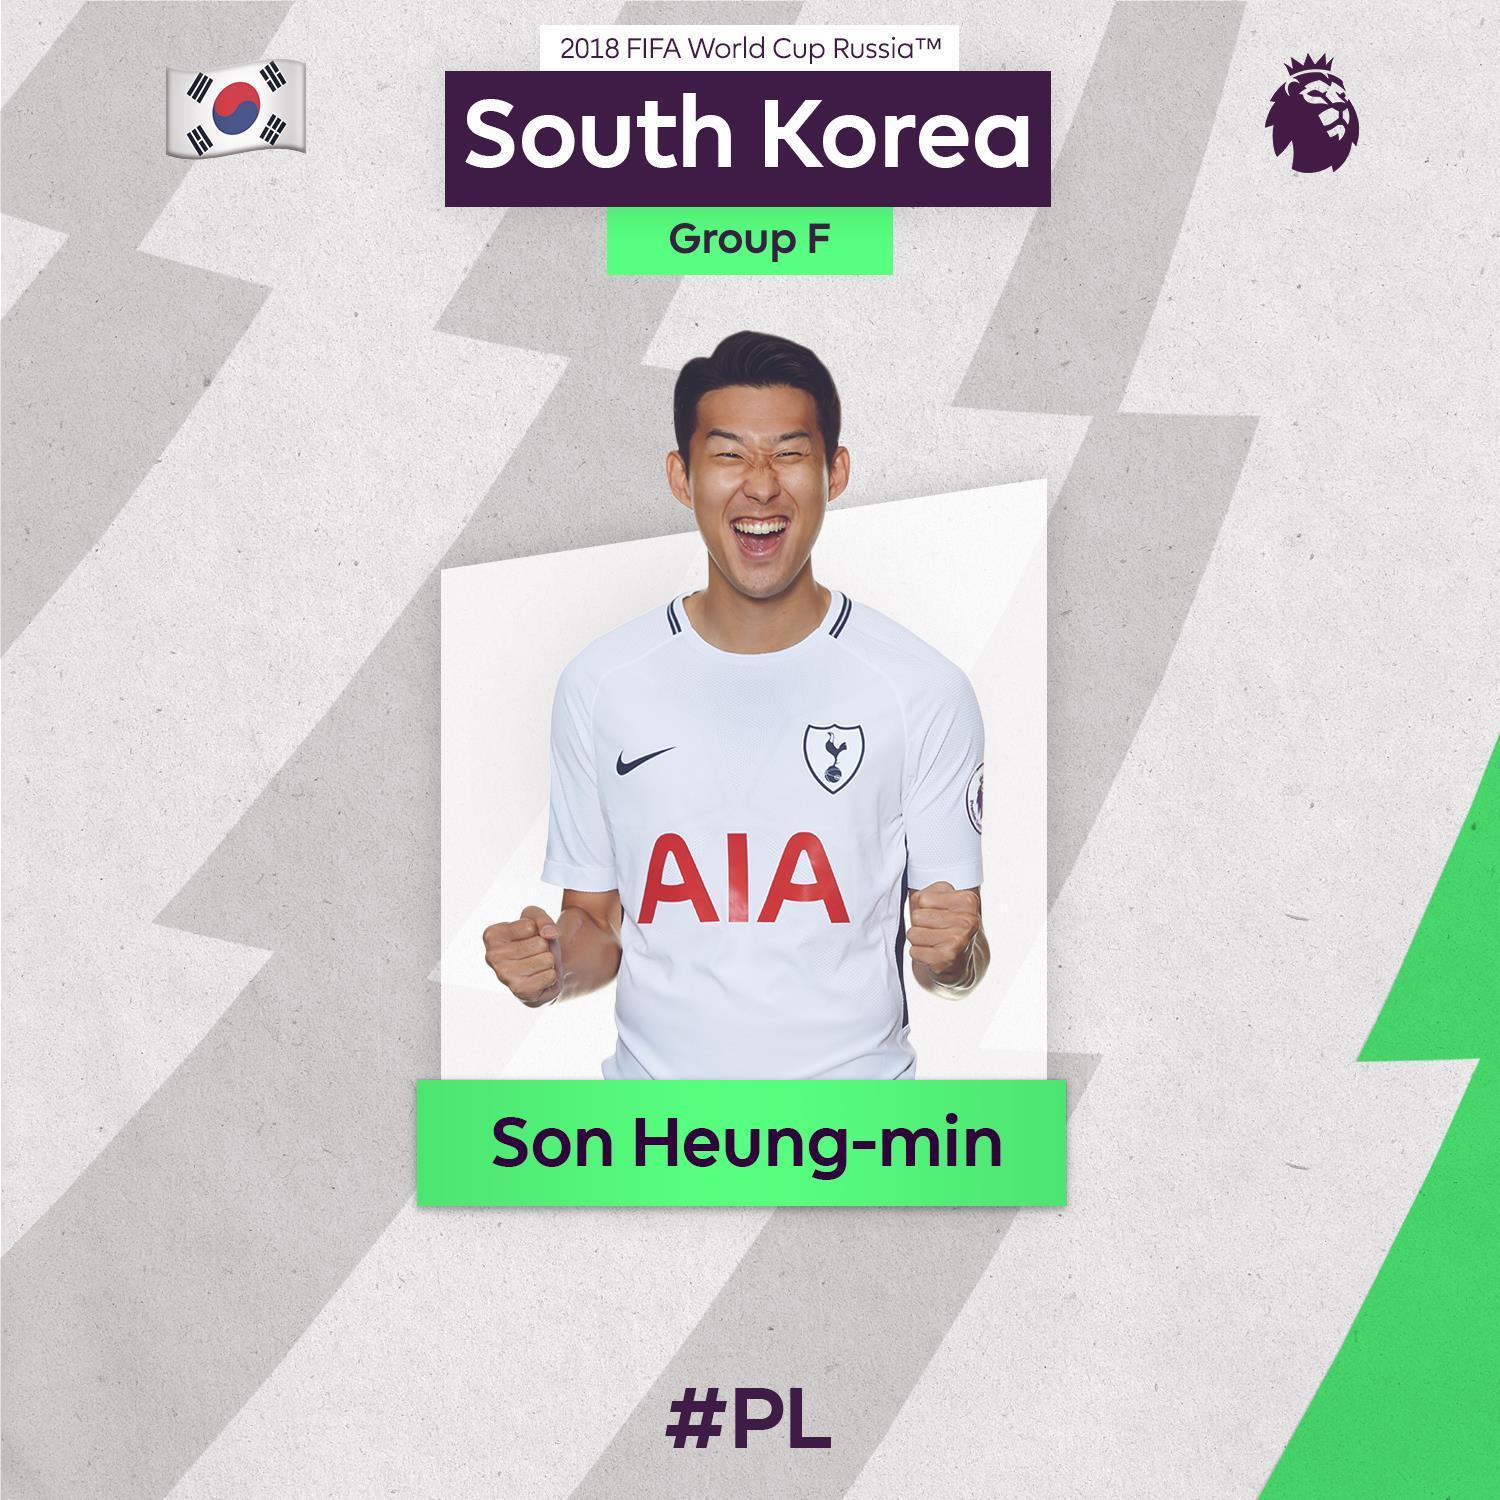 South Korea enter the #WorldCup fray - and it's a start for @SpursOfficial star Son Heung-Min #SWEKOR https://t.co/HMMJdO6aMc